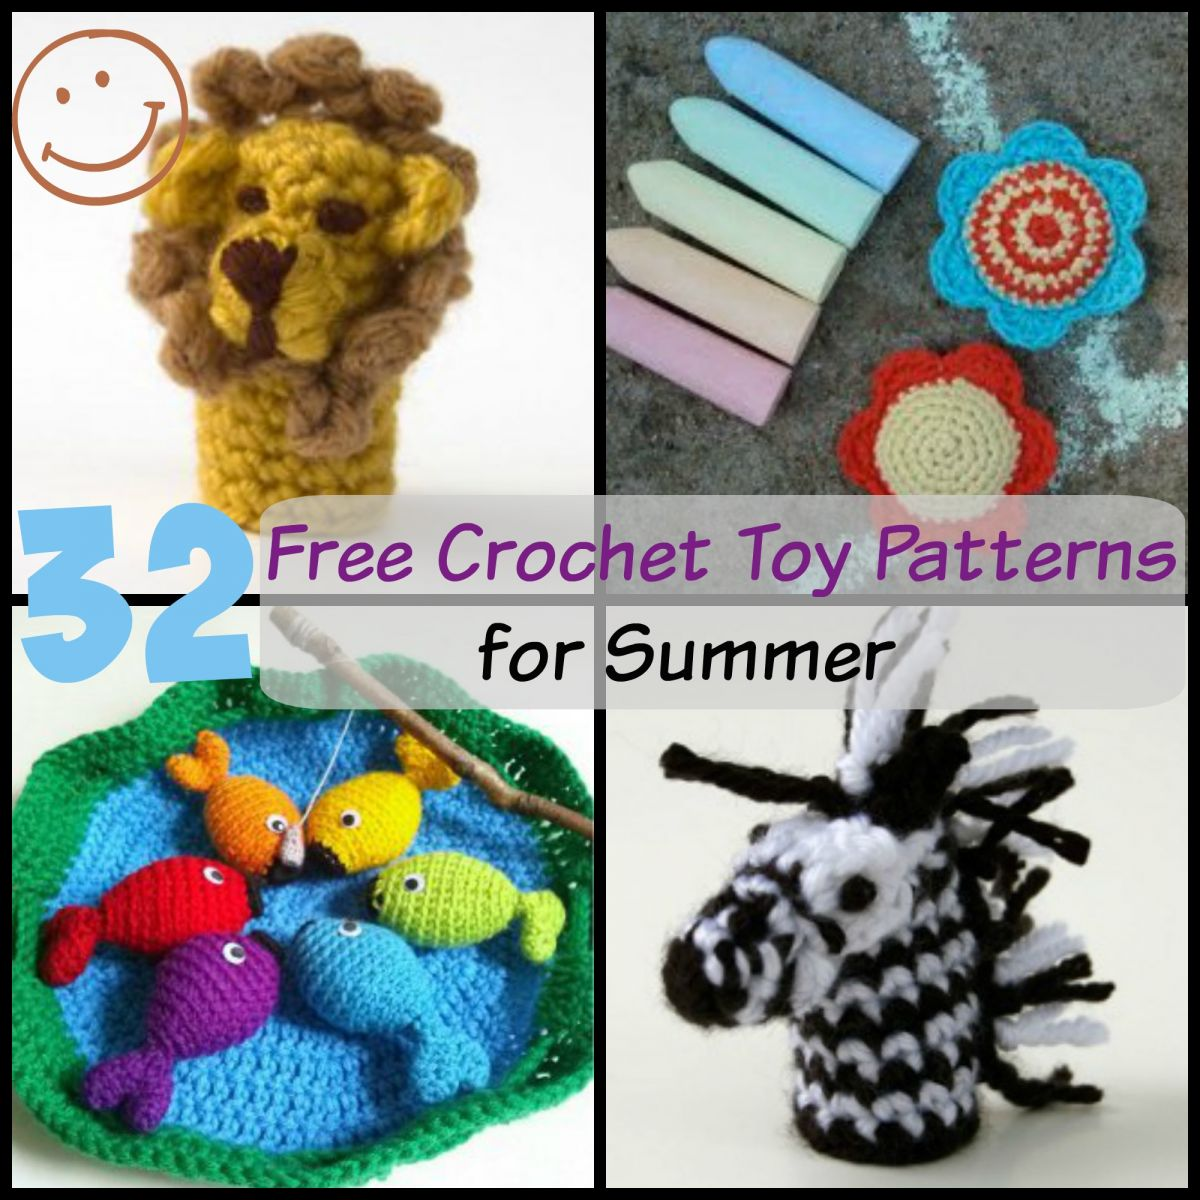 Toys To Crochet Free Patterns : 32 Free Crochet Toy Patterns AllFreeCrochet.com